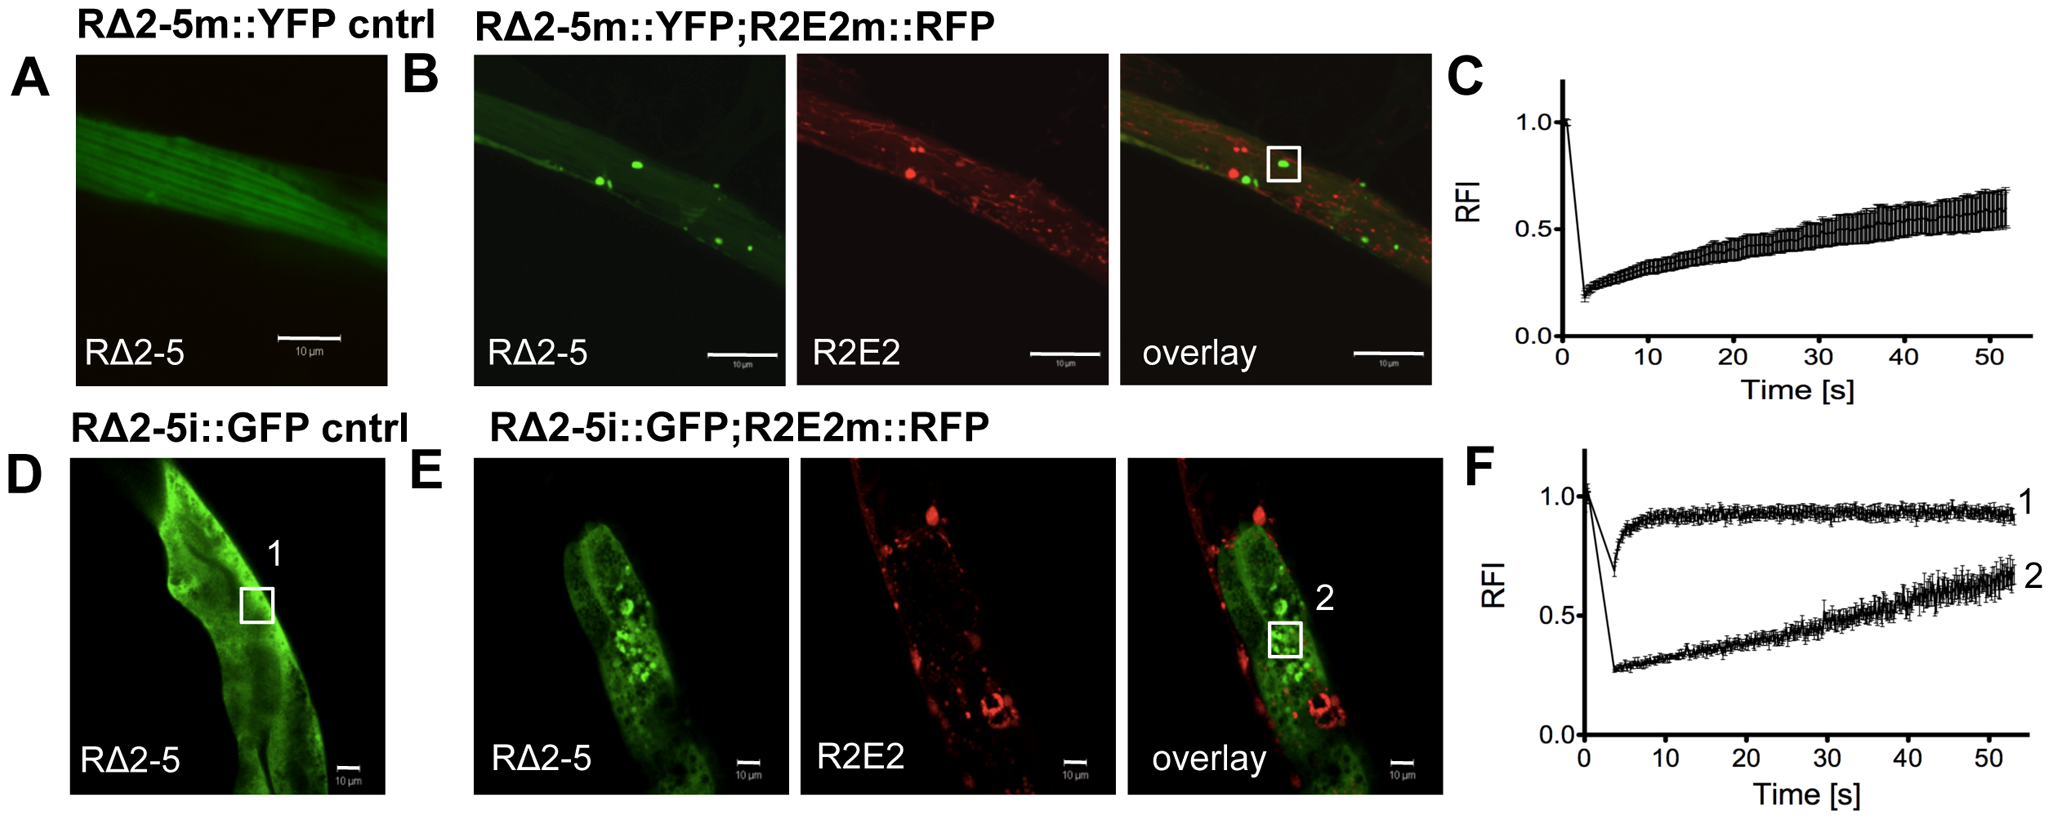 R2E2 induces widespread aggregation of RΔ2-5.